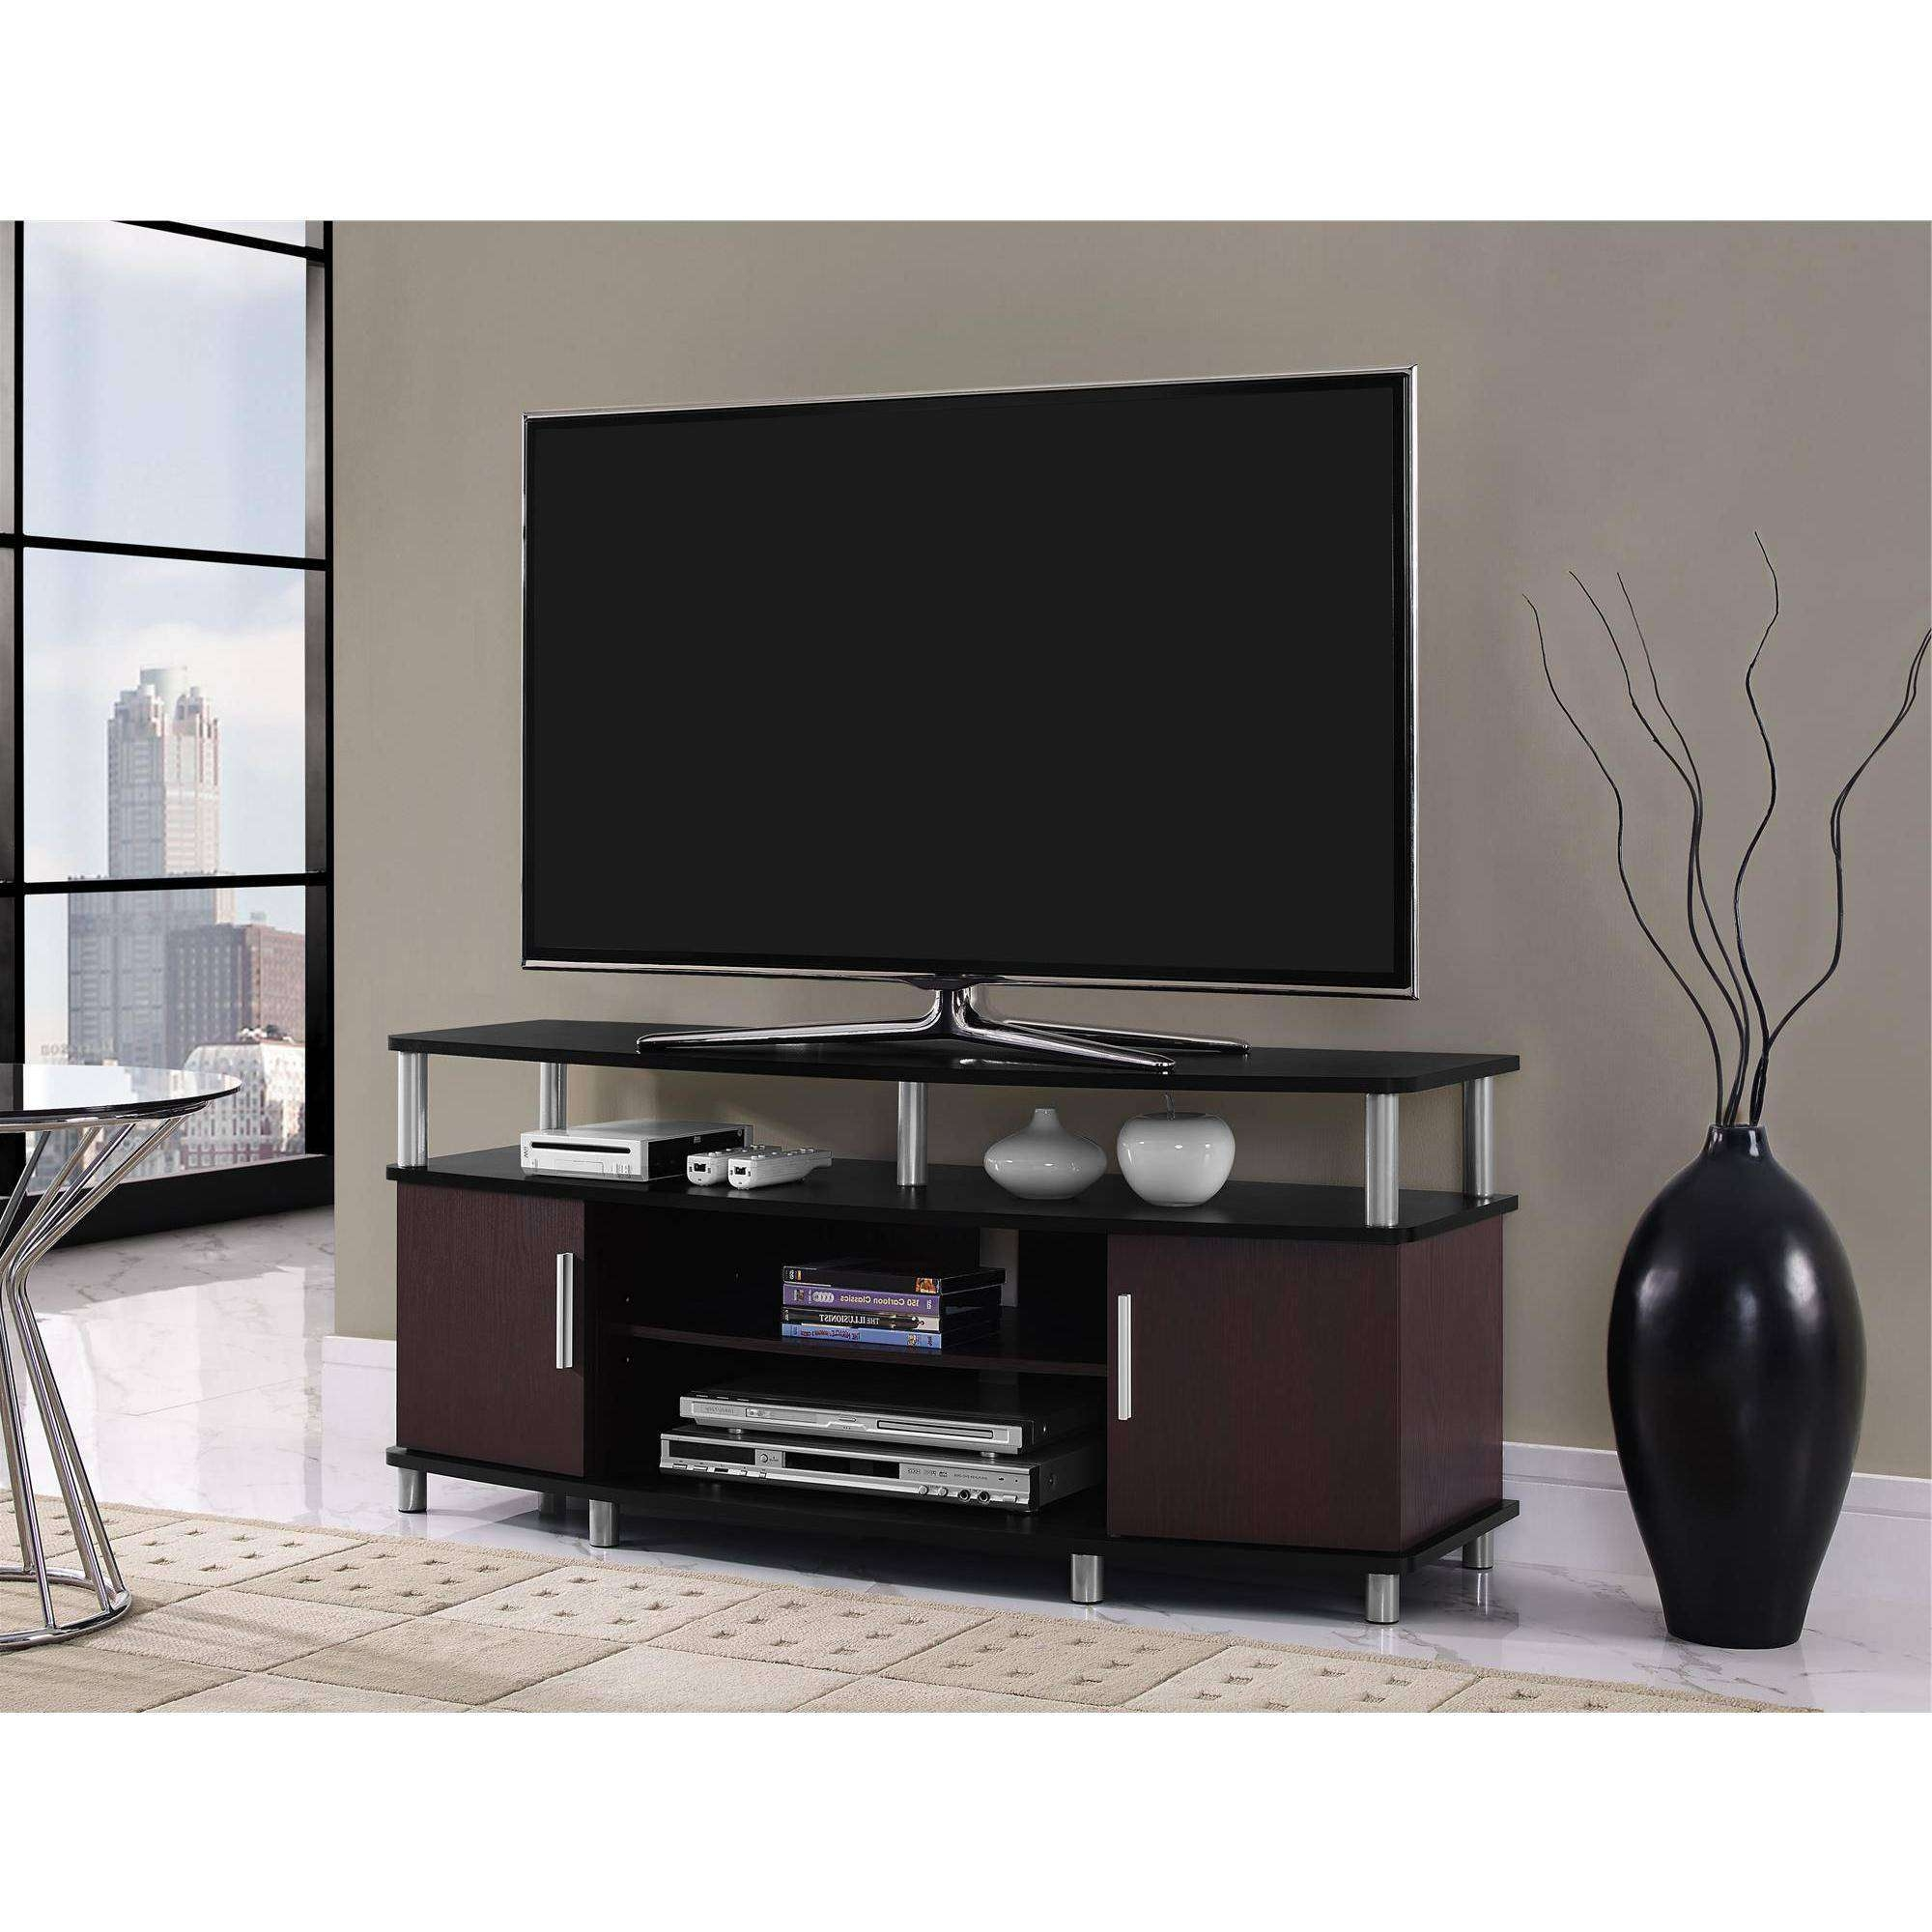 Fancy Tv Stands For 40 Inch Tv 80 In Home Decoration Ideas With Tv Throughout Fancy Tv Stands (View 15 of 15)